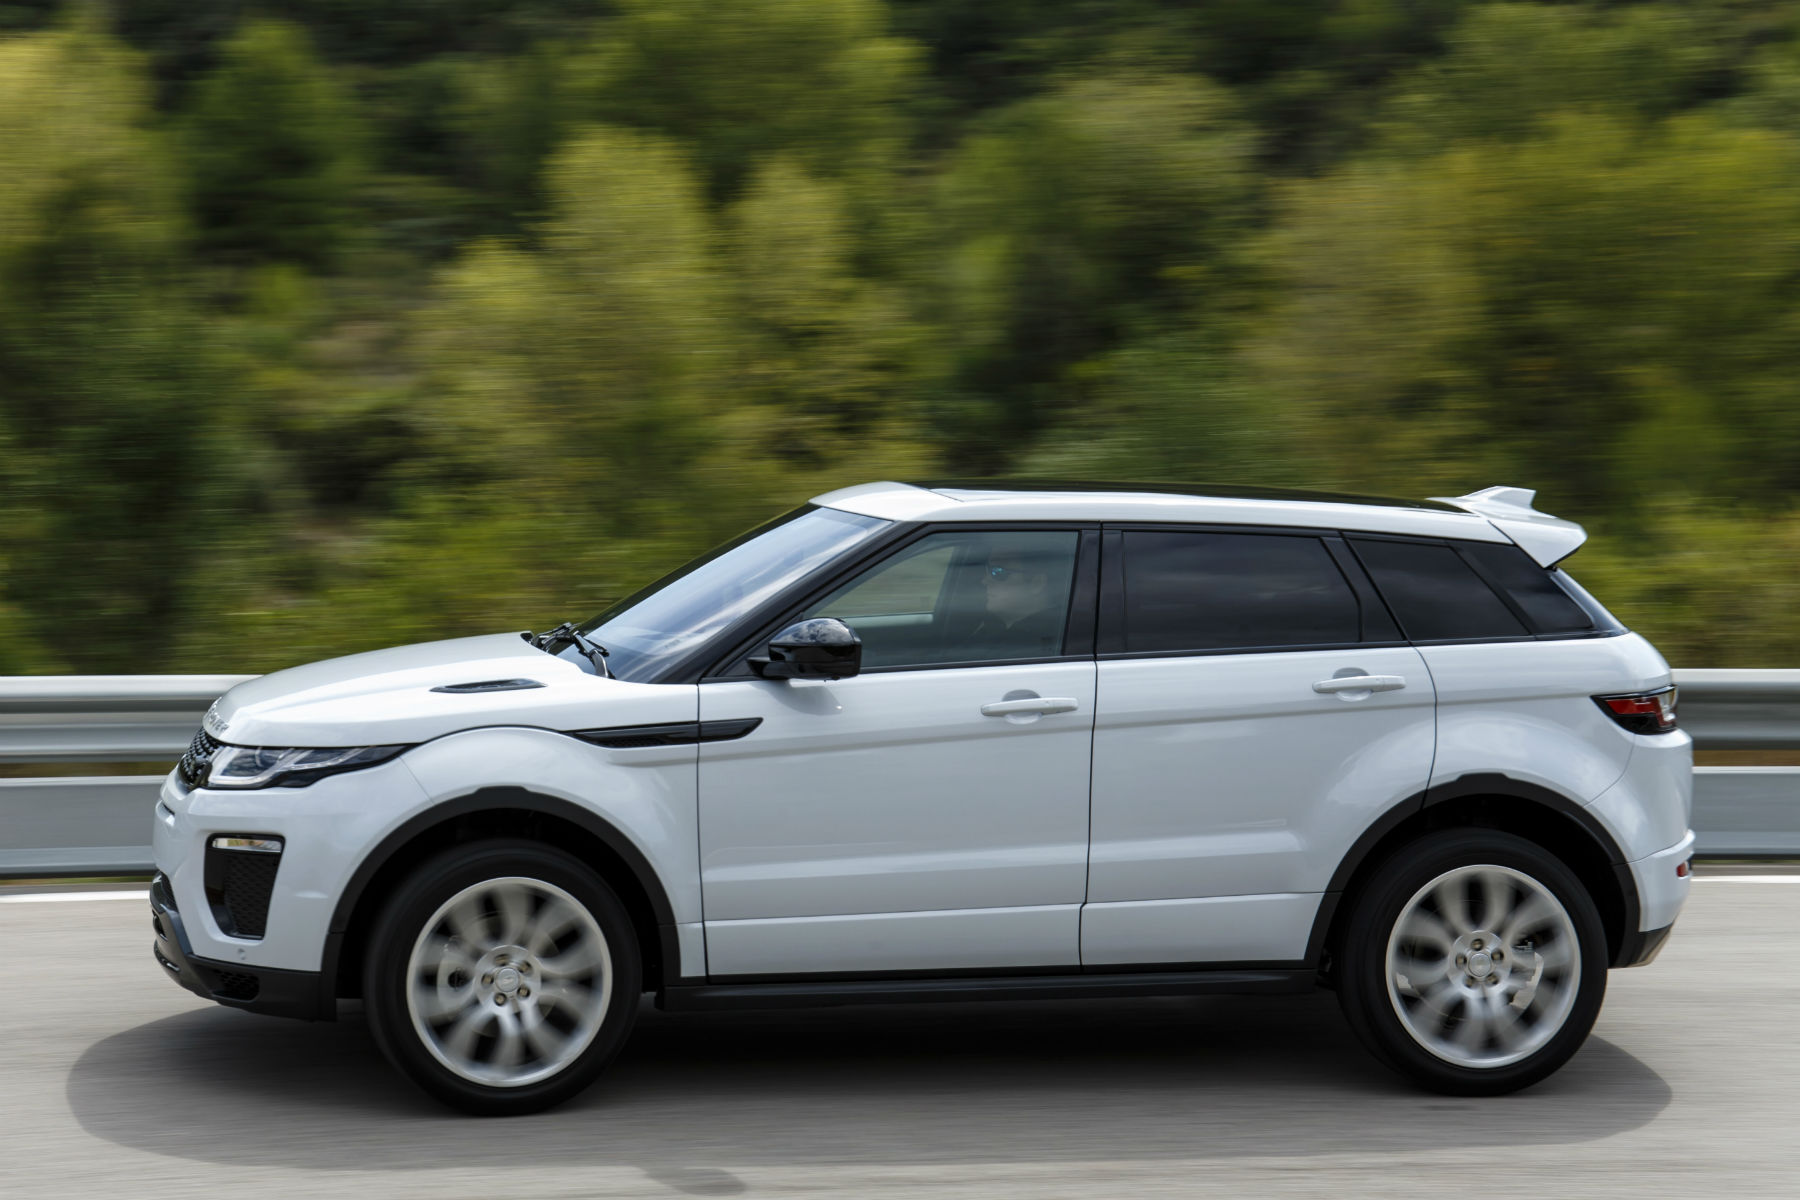 05eee436ba8 Range Rover Evoque review  2015 first drive